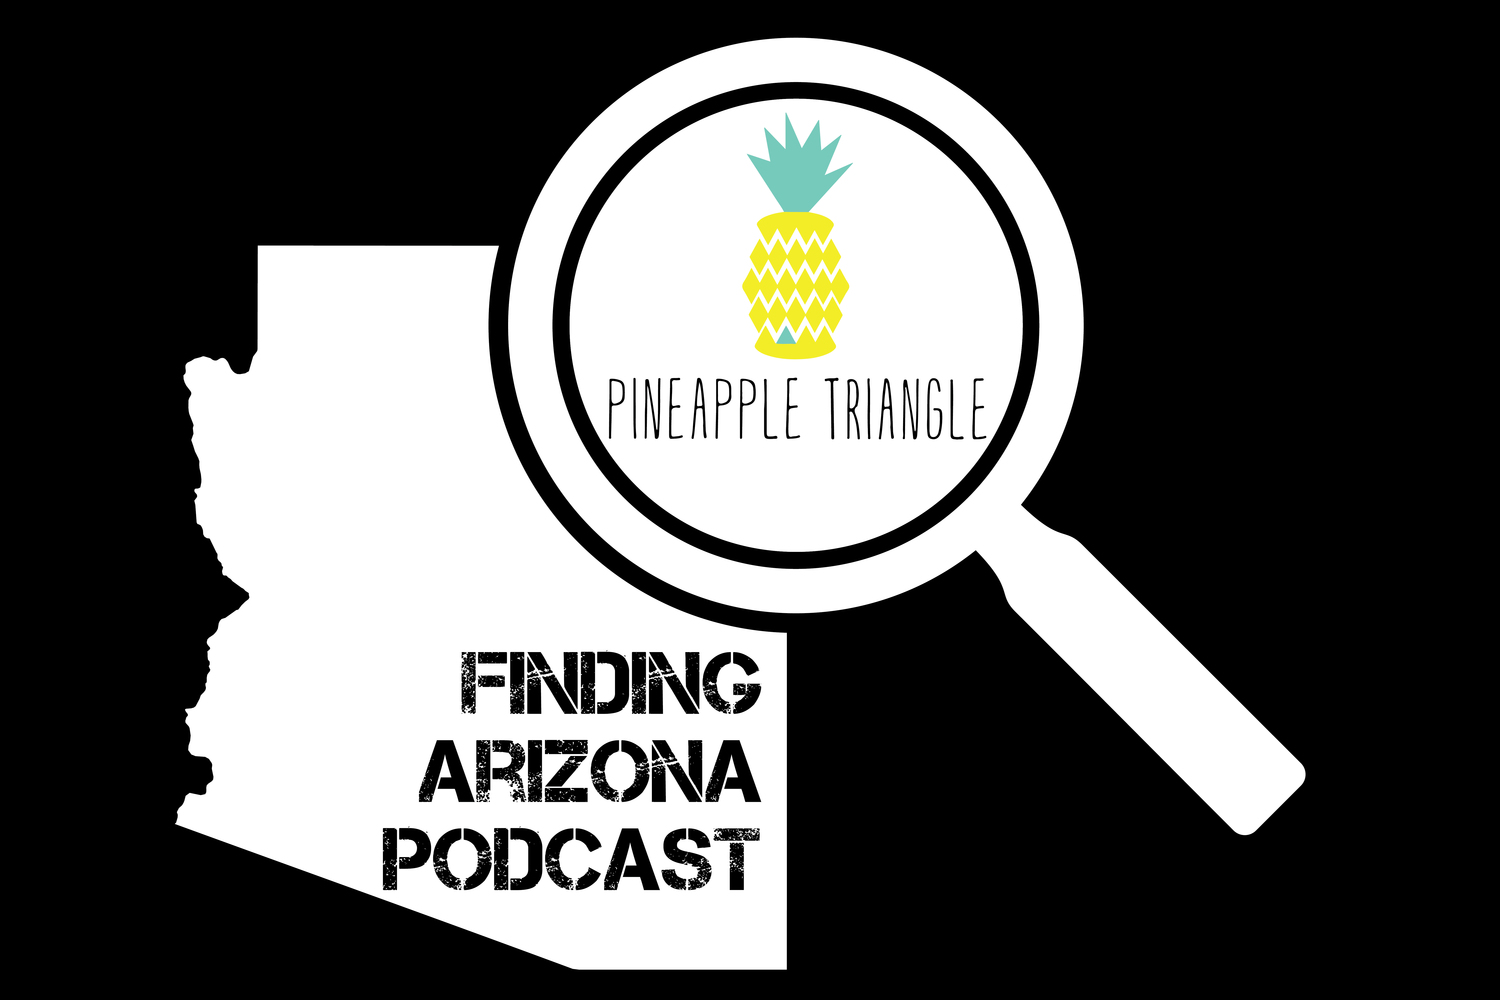 pineapple-triangle-podcast-06.jpg